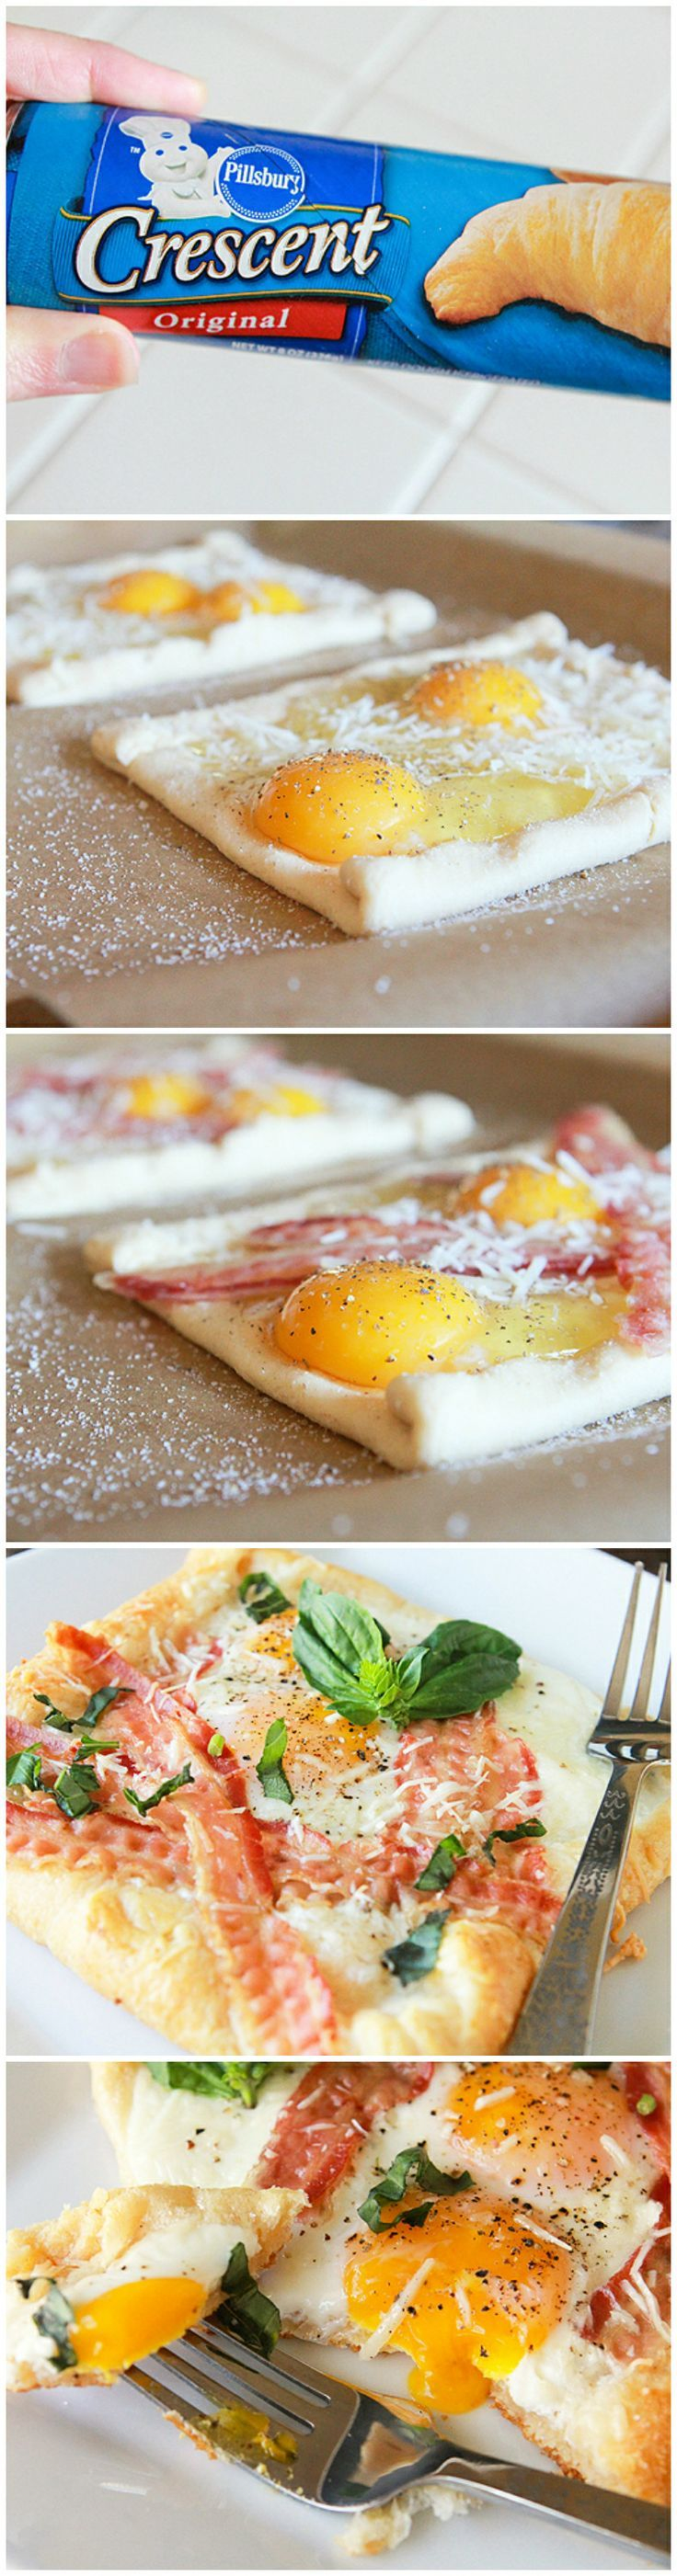 Bacon and Egg Crescent Squares. Great brunch idea. Love this. Minus the bacon.